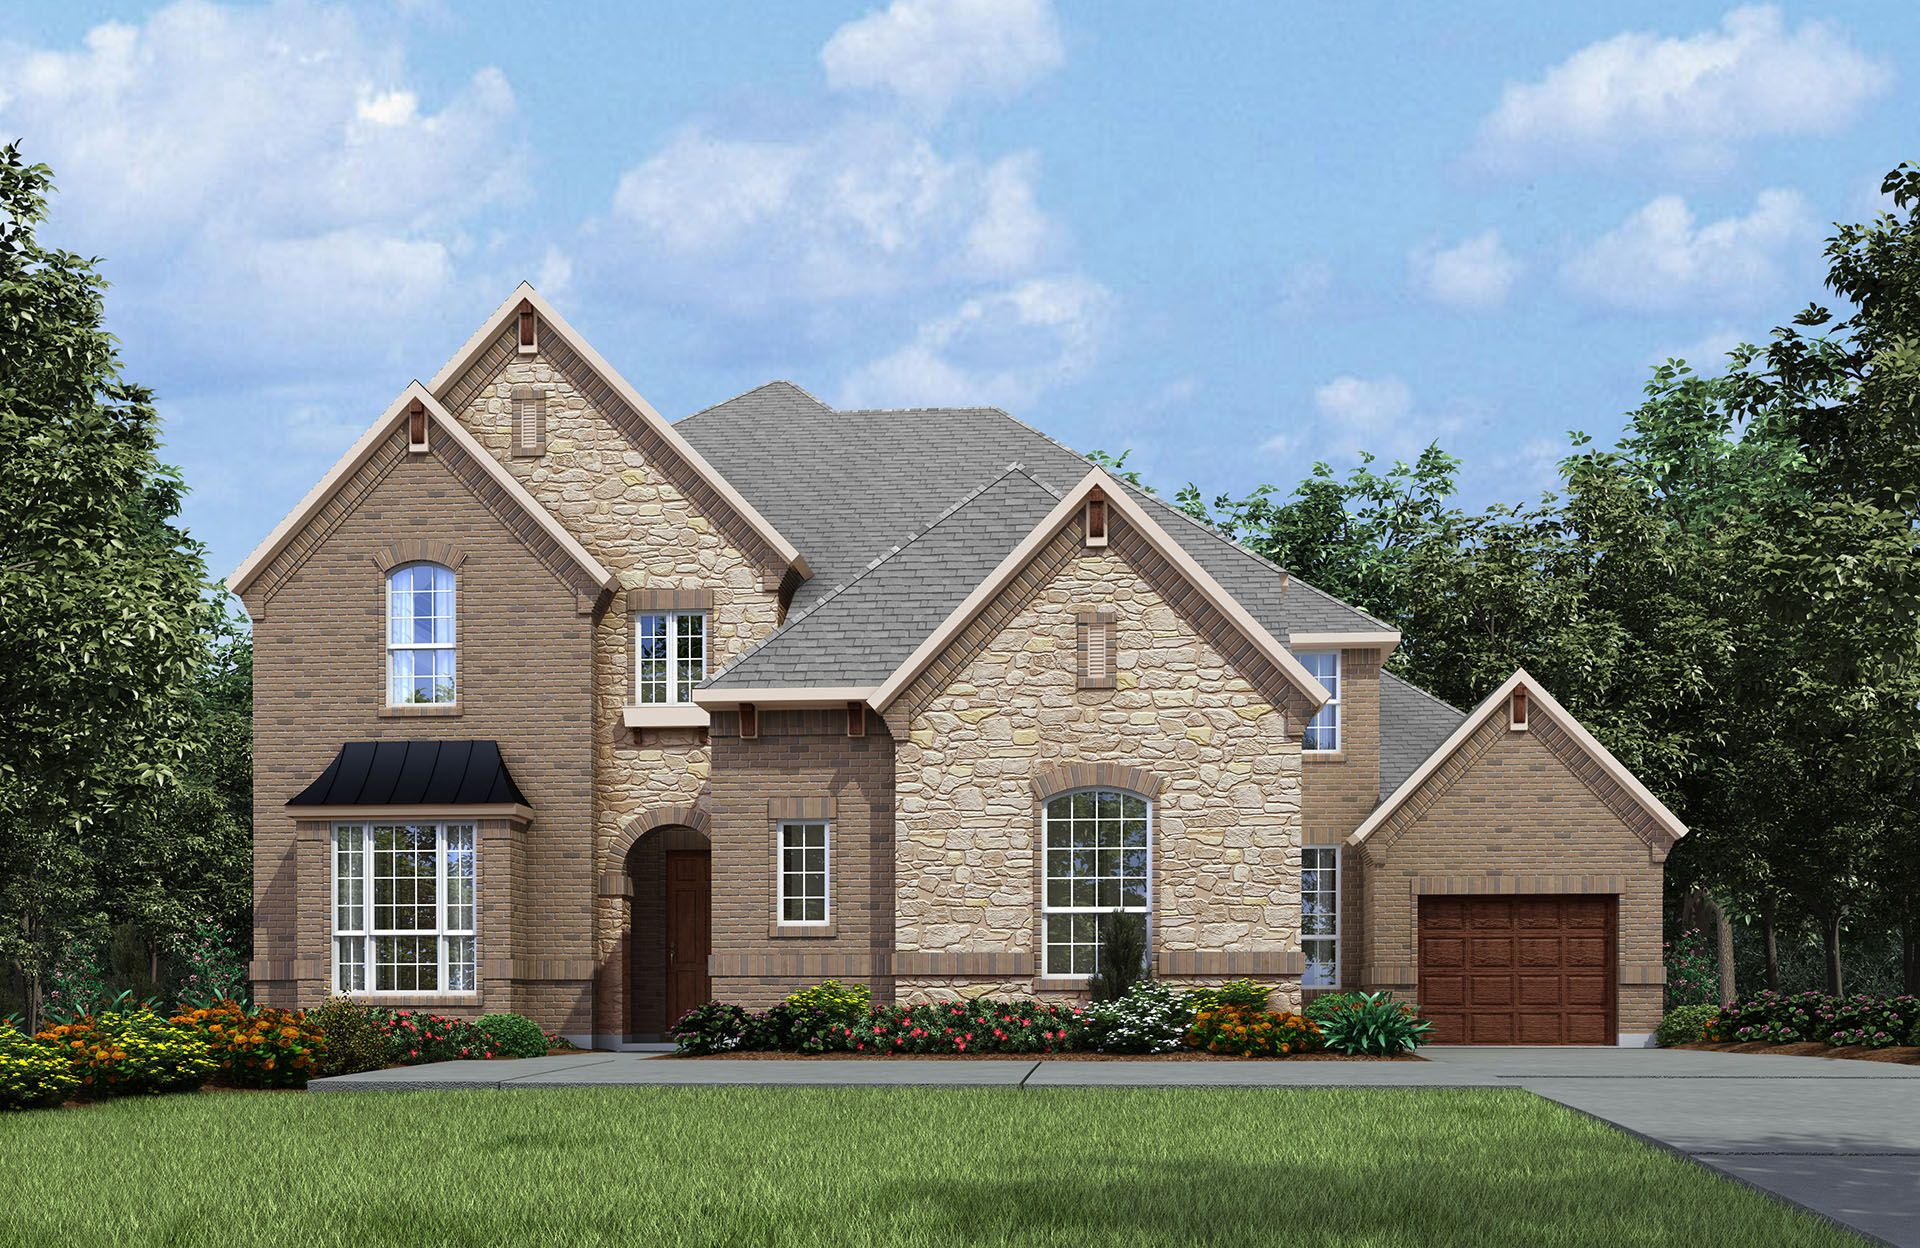 Single Family for Active at Breezy Hill - Oakley Ii Ridgecross Drive Rockwall, Texas 75087 United States